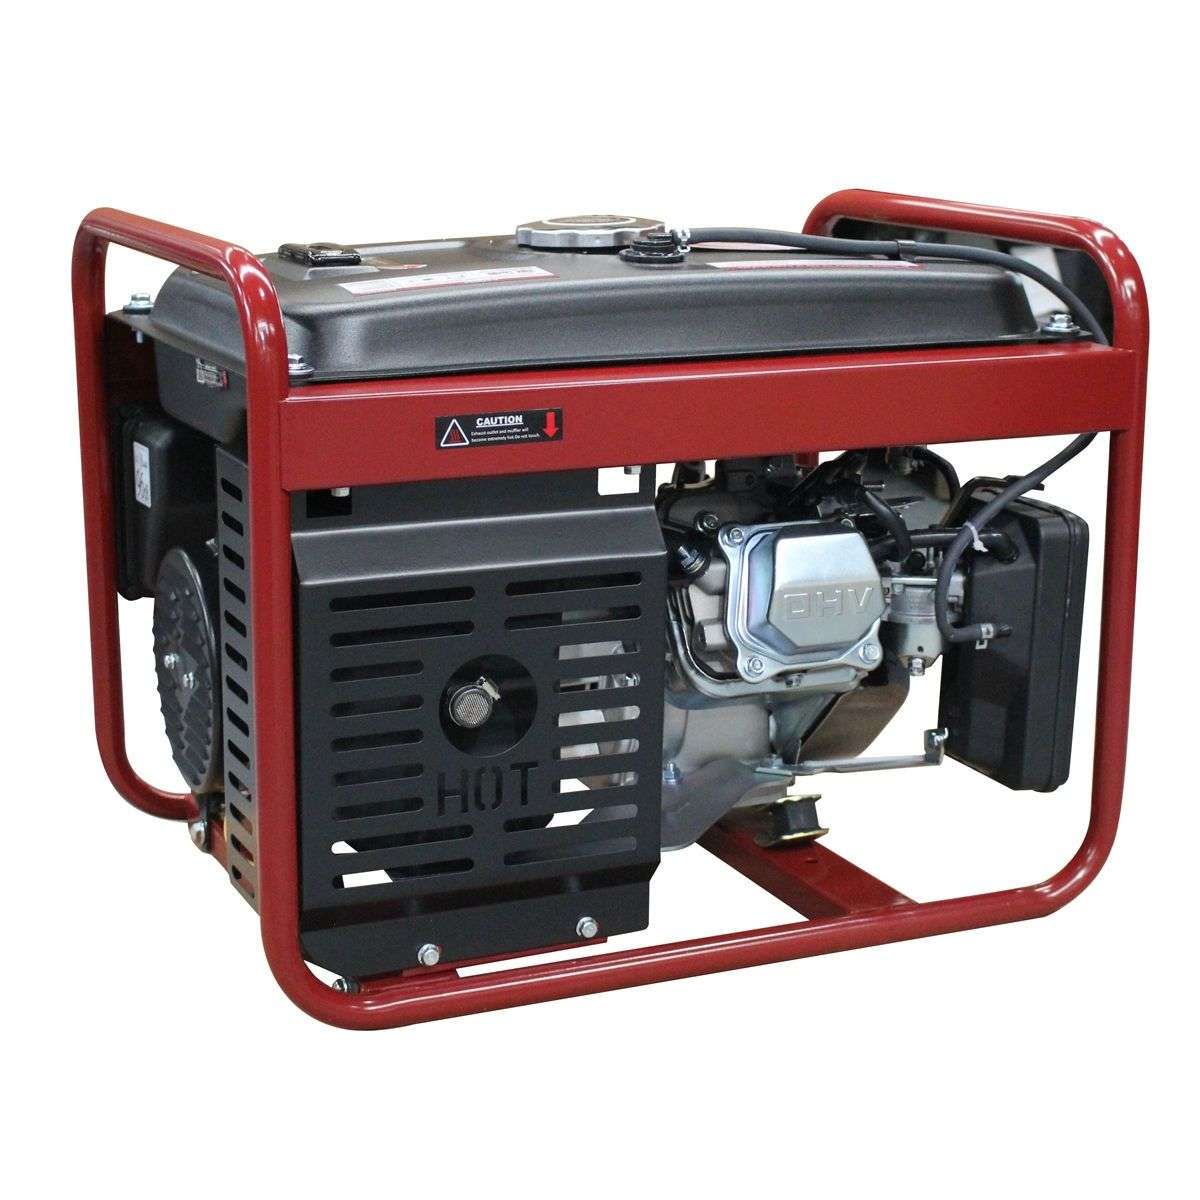 208cc Air Cooled Gas Powered 4000w Gasoline Generator Portable Inverter Generator Generation Emergency Power